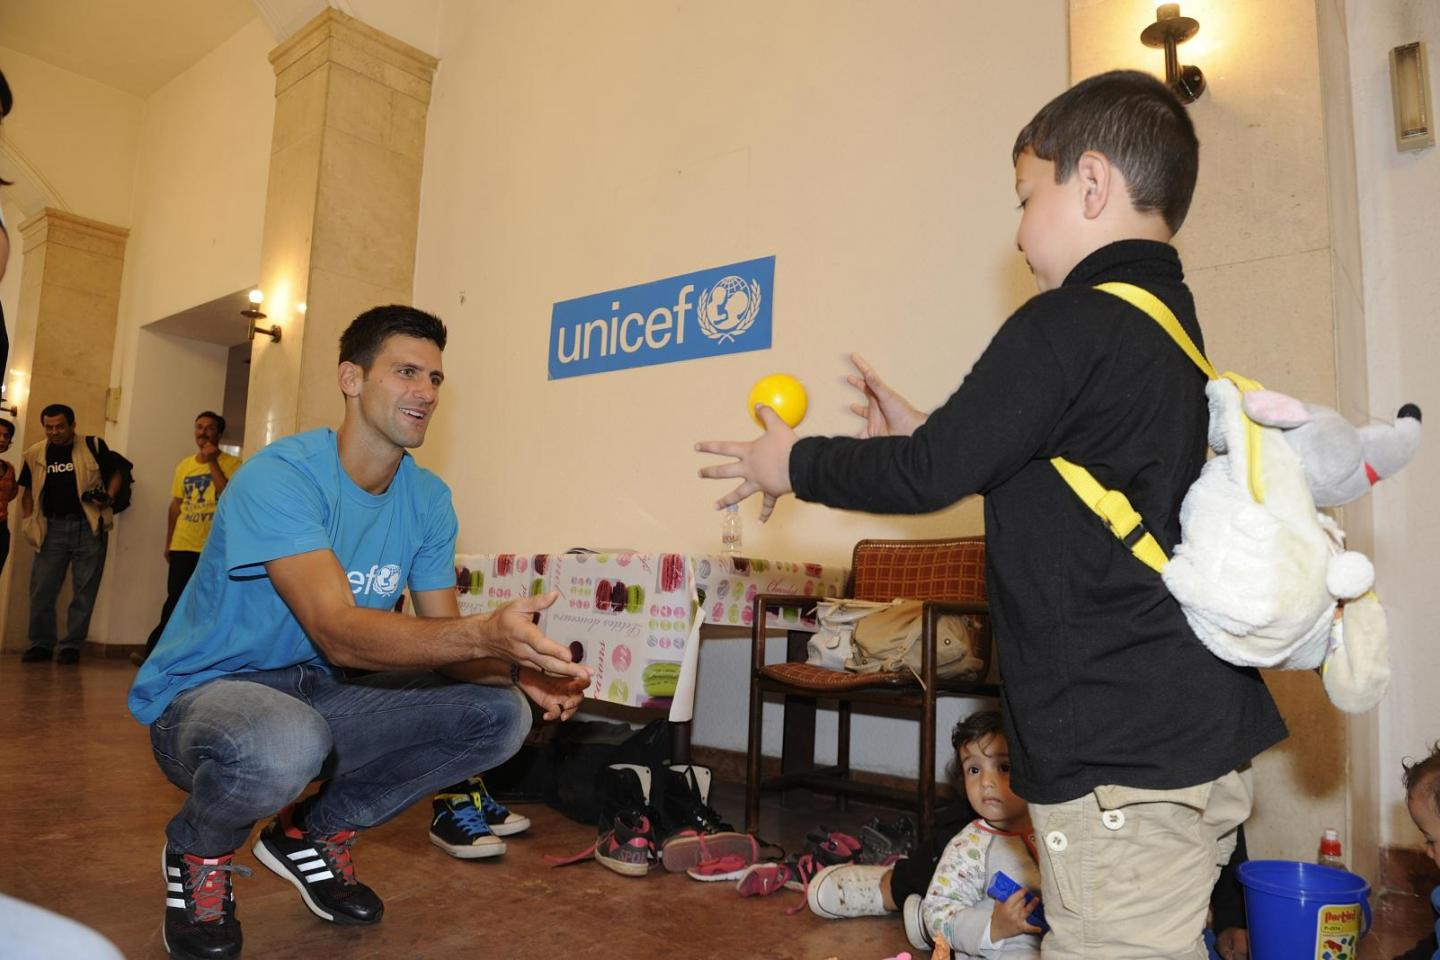 UNICEF Goodwill Ambassador Novak Djokovic plays with Boset at the UNICEF-supported child-friendly space in Belgrade.